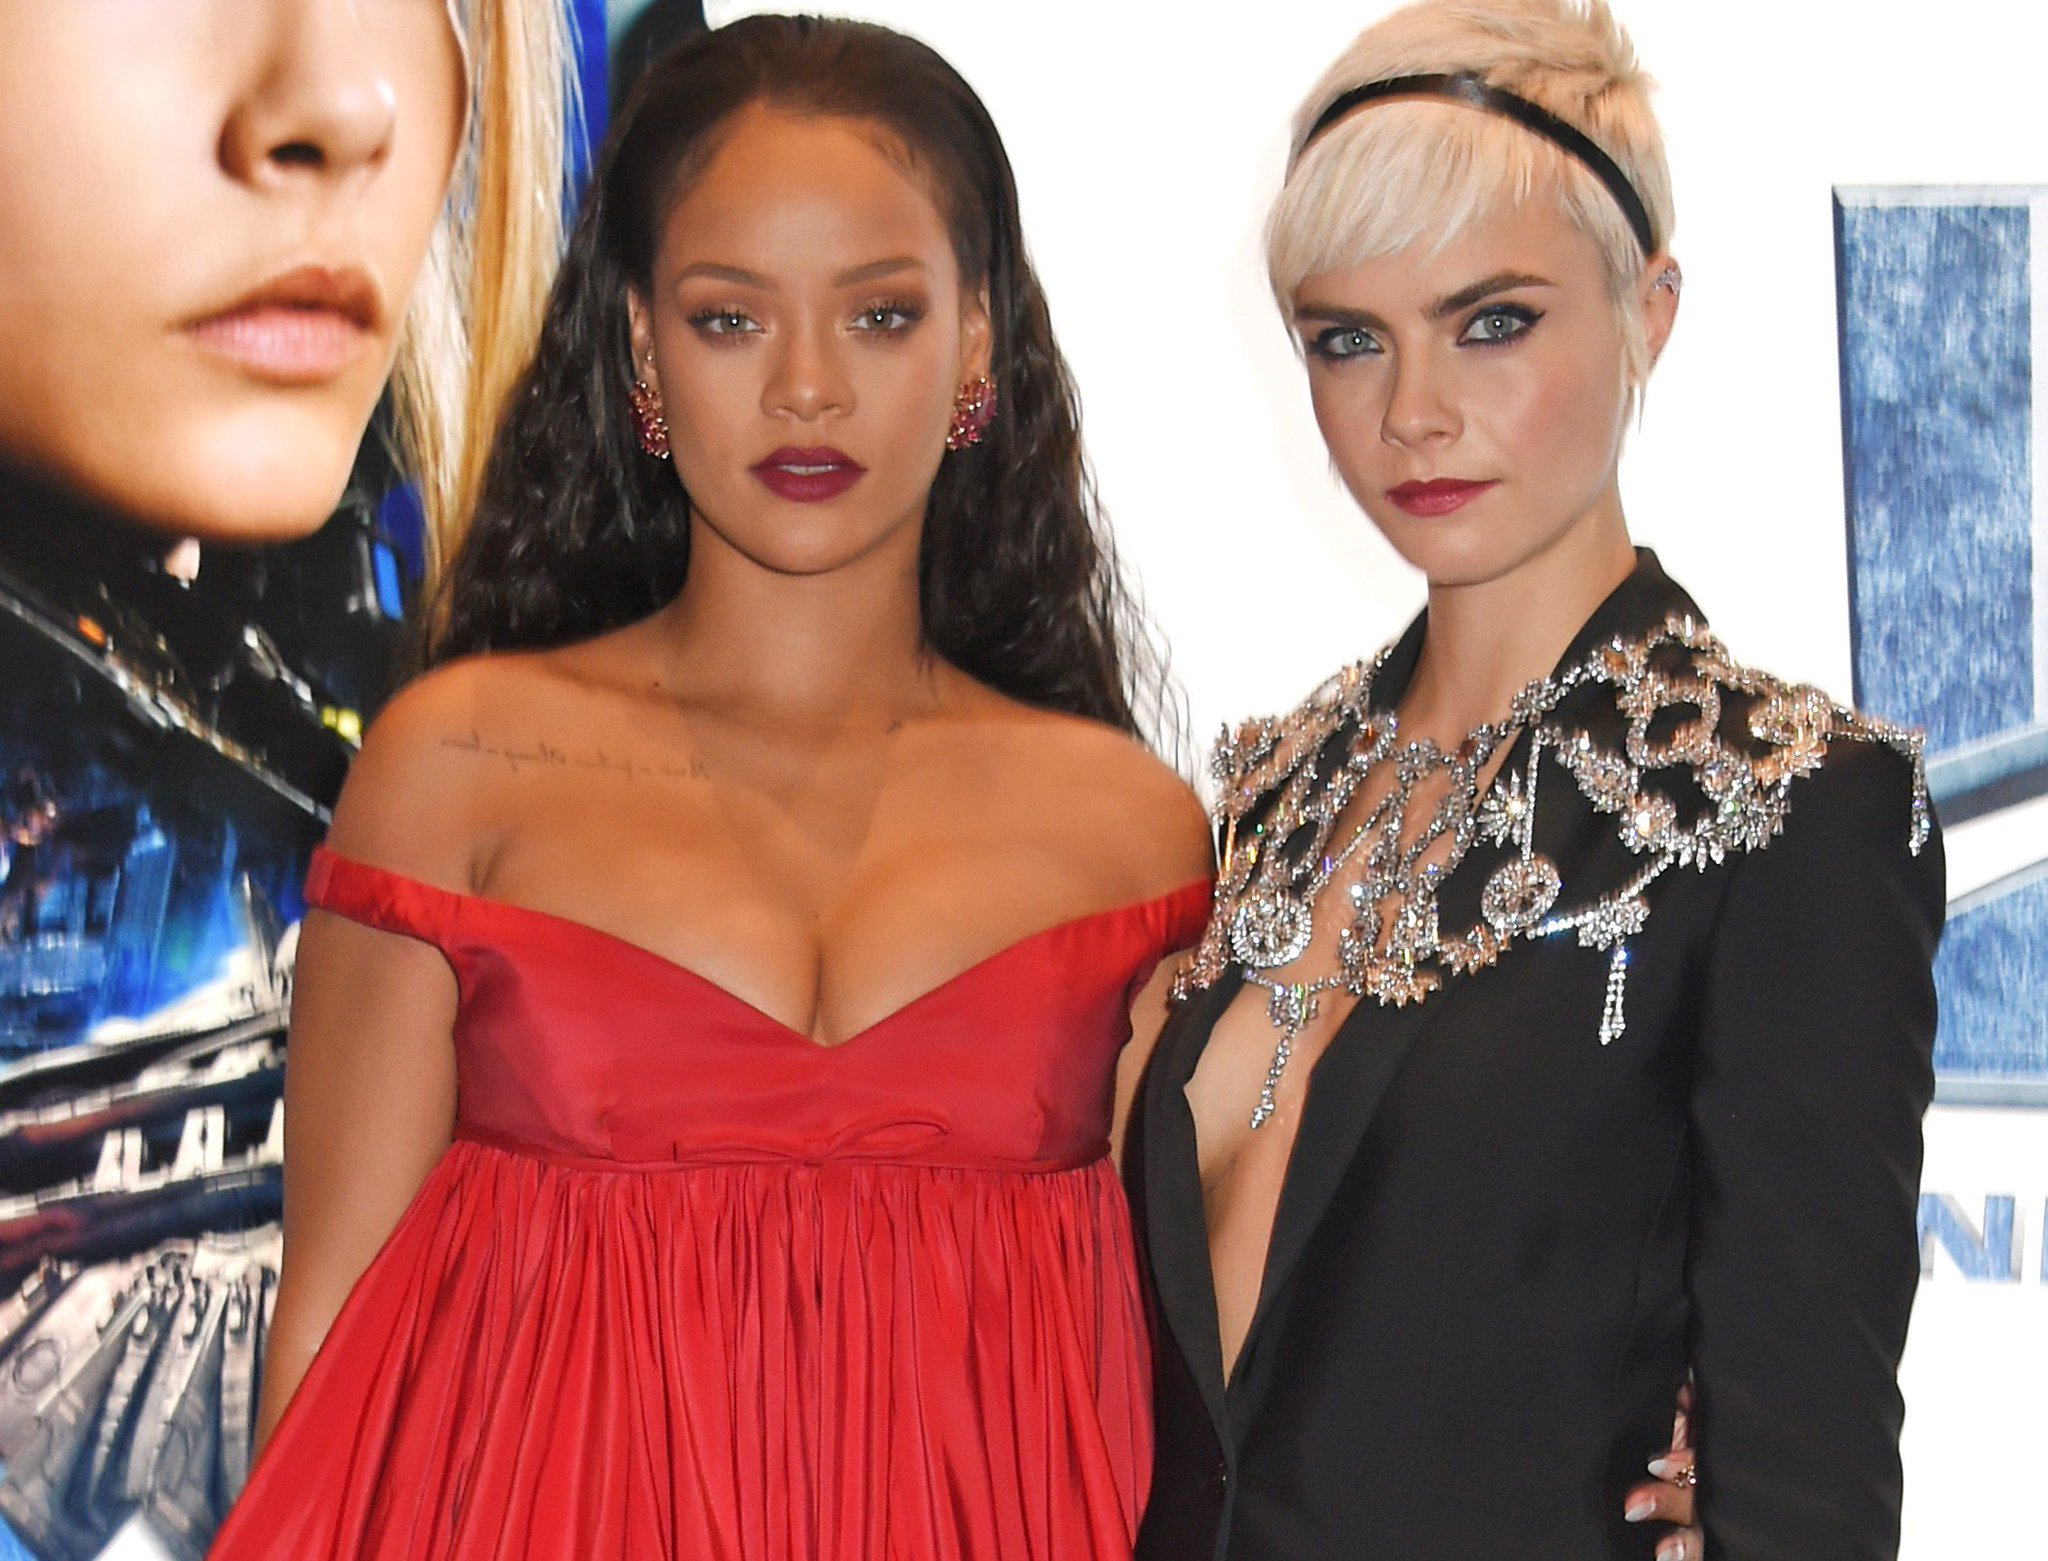 Cara Delevingne just hilariously called herself out for staring at Rihanna's cleavage: https://t.co/b865zQIX6F https://t.co/Y9NvKJZTyM